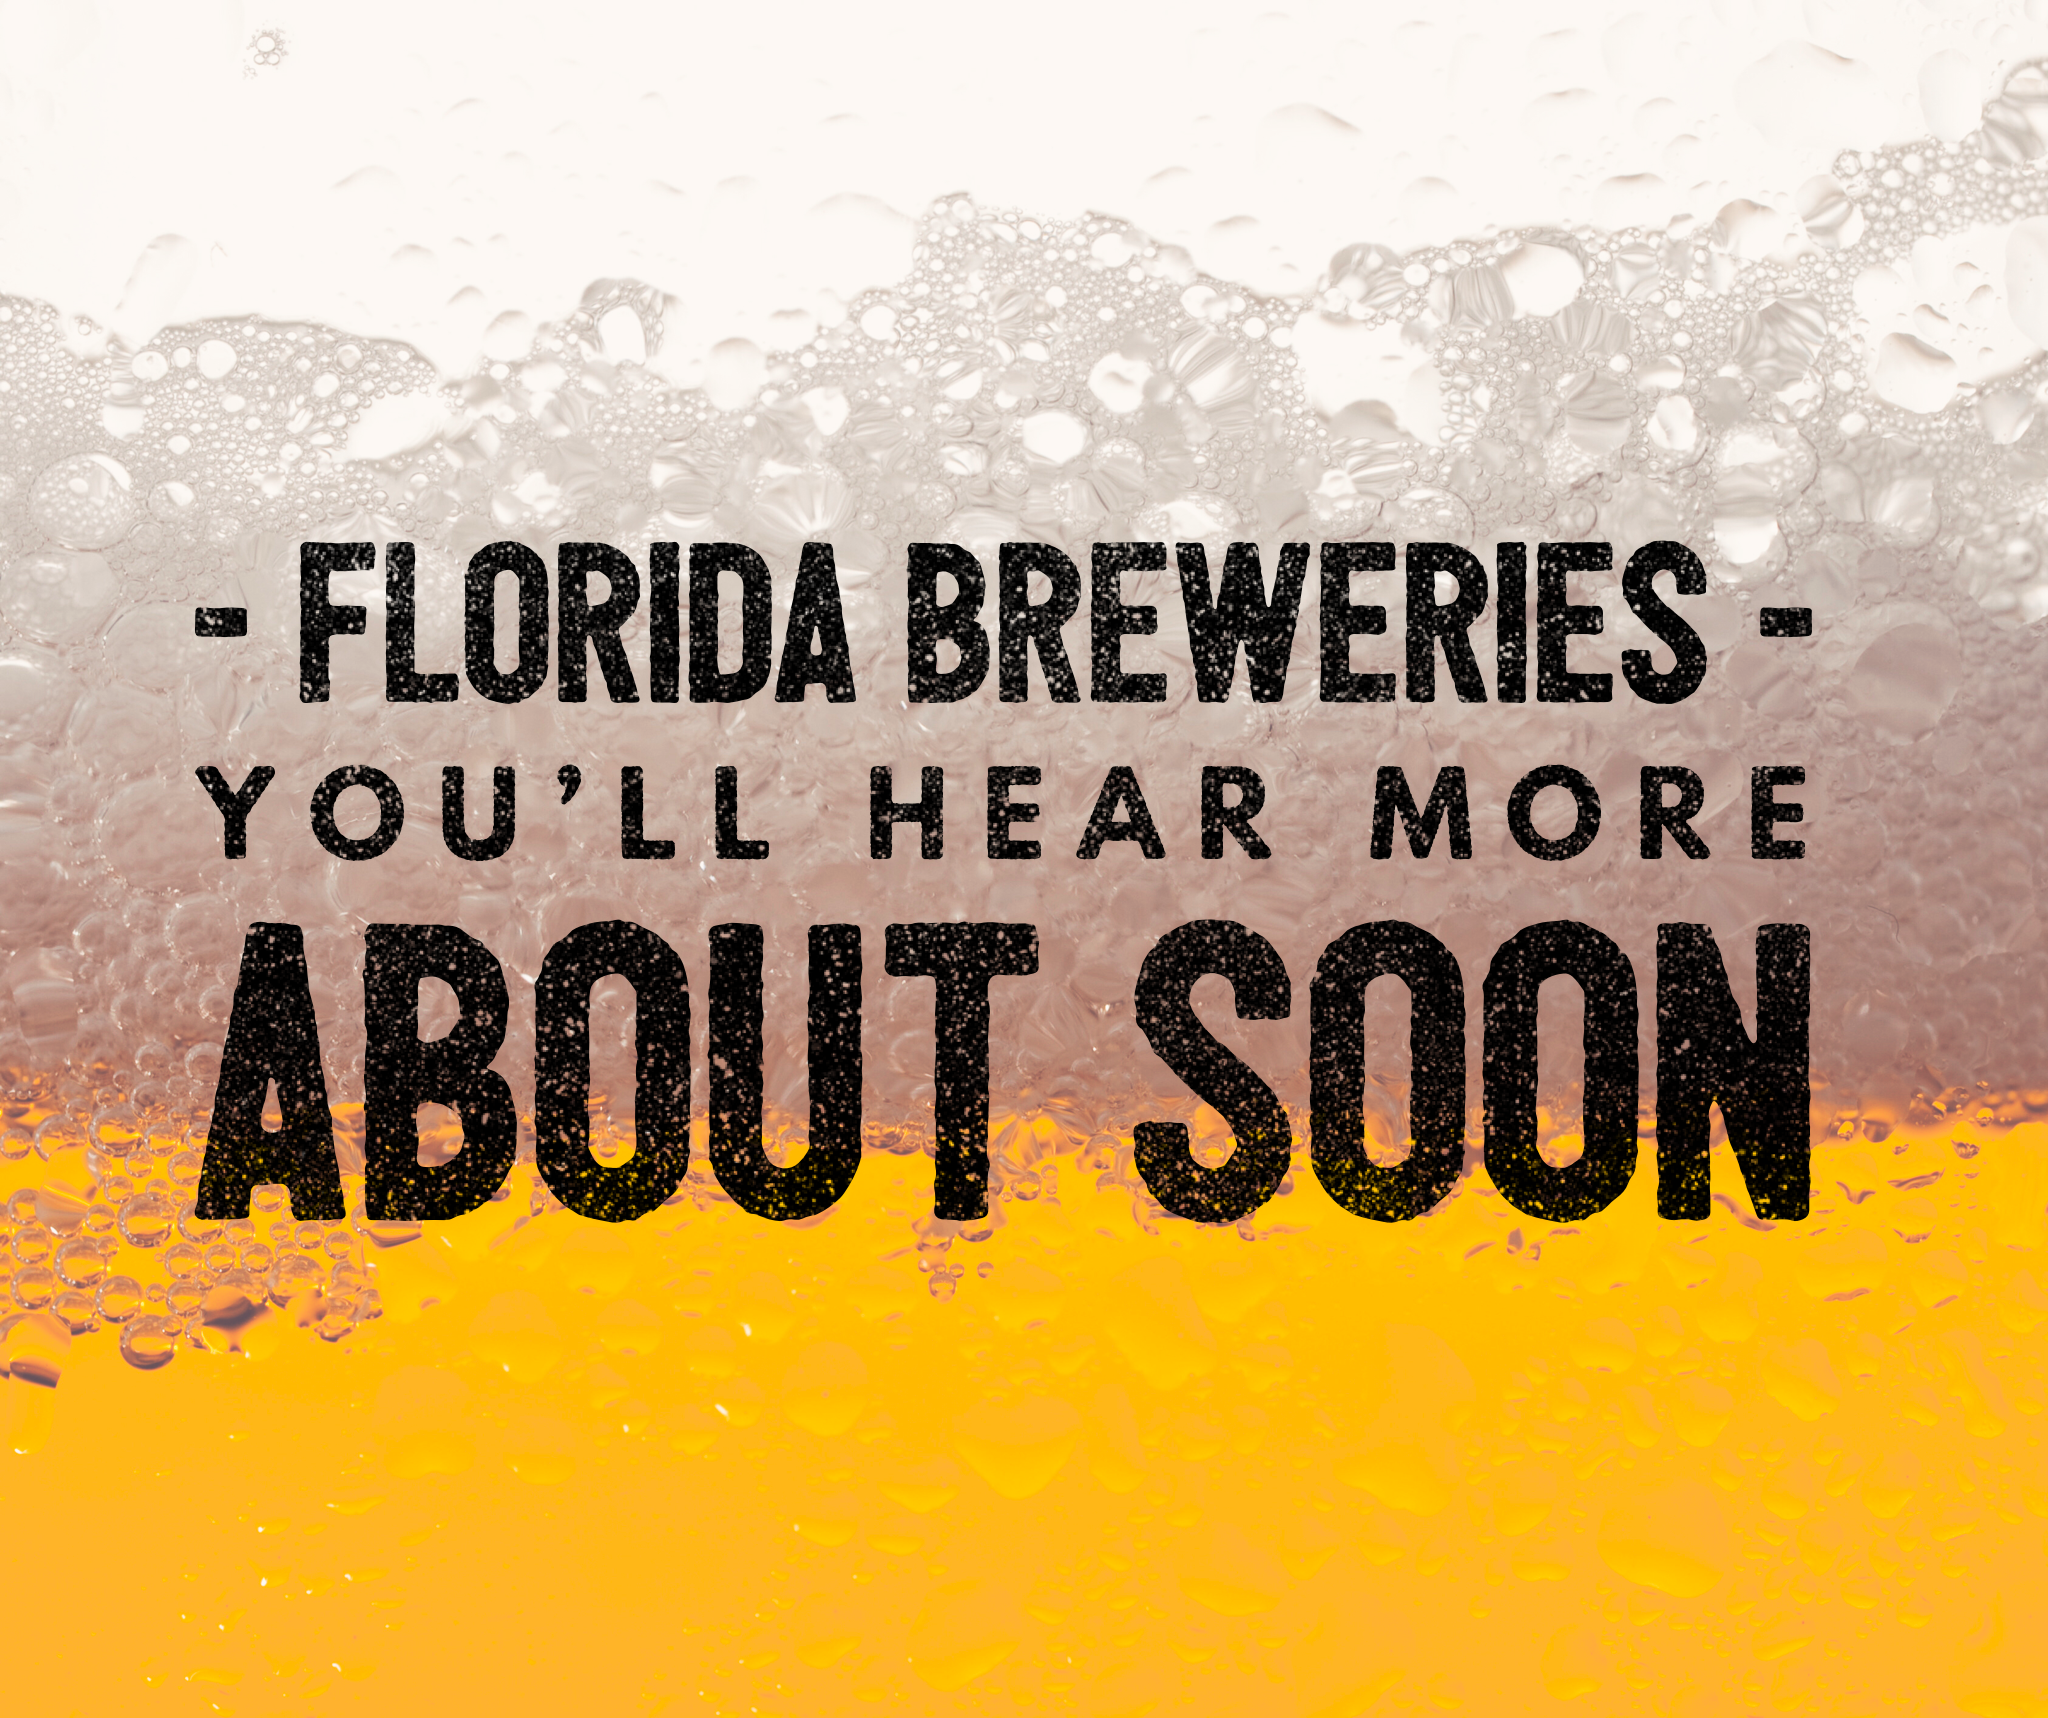 Florida Breweries headline